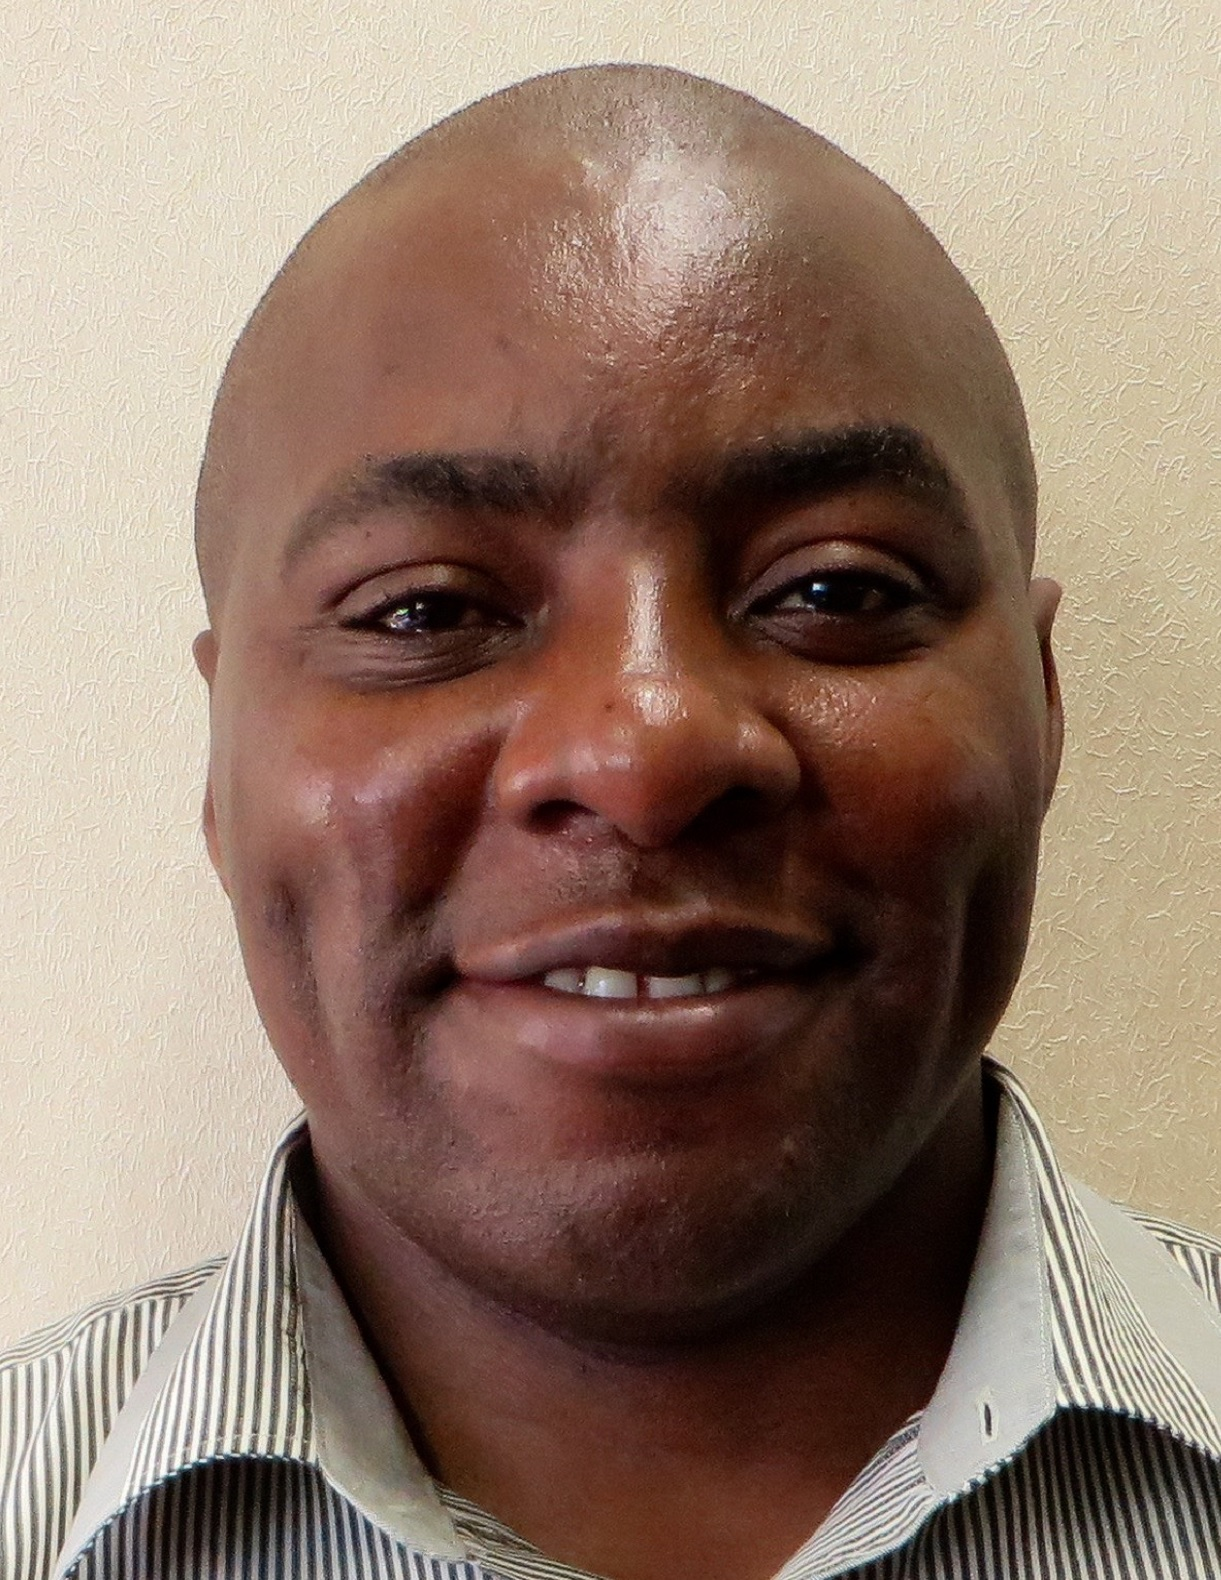 Jacob Nyangila